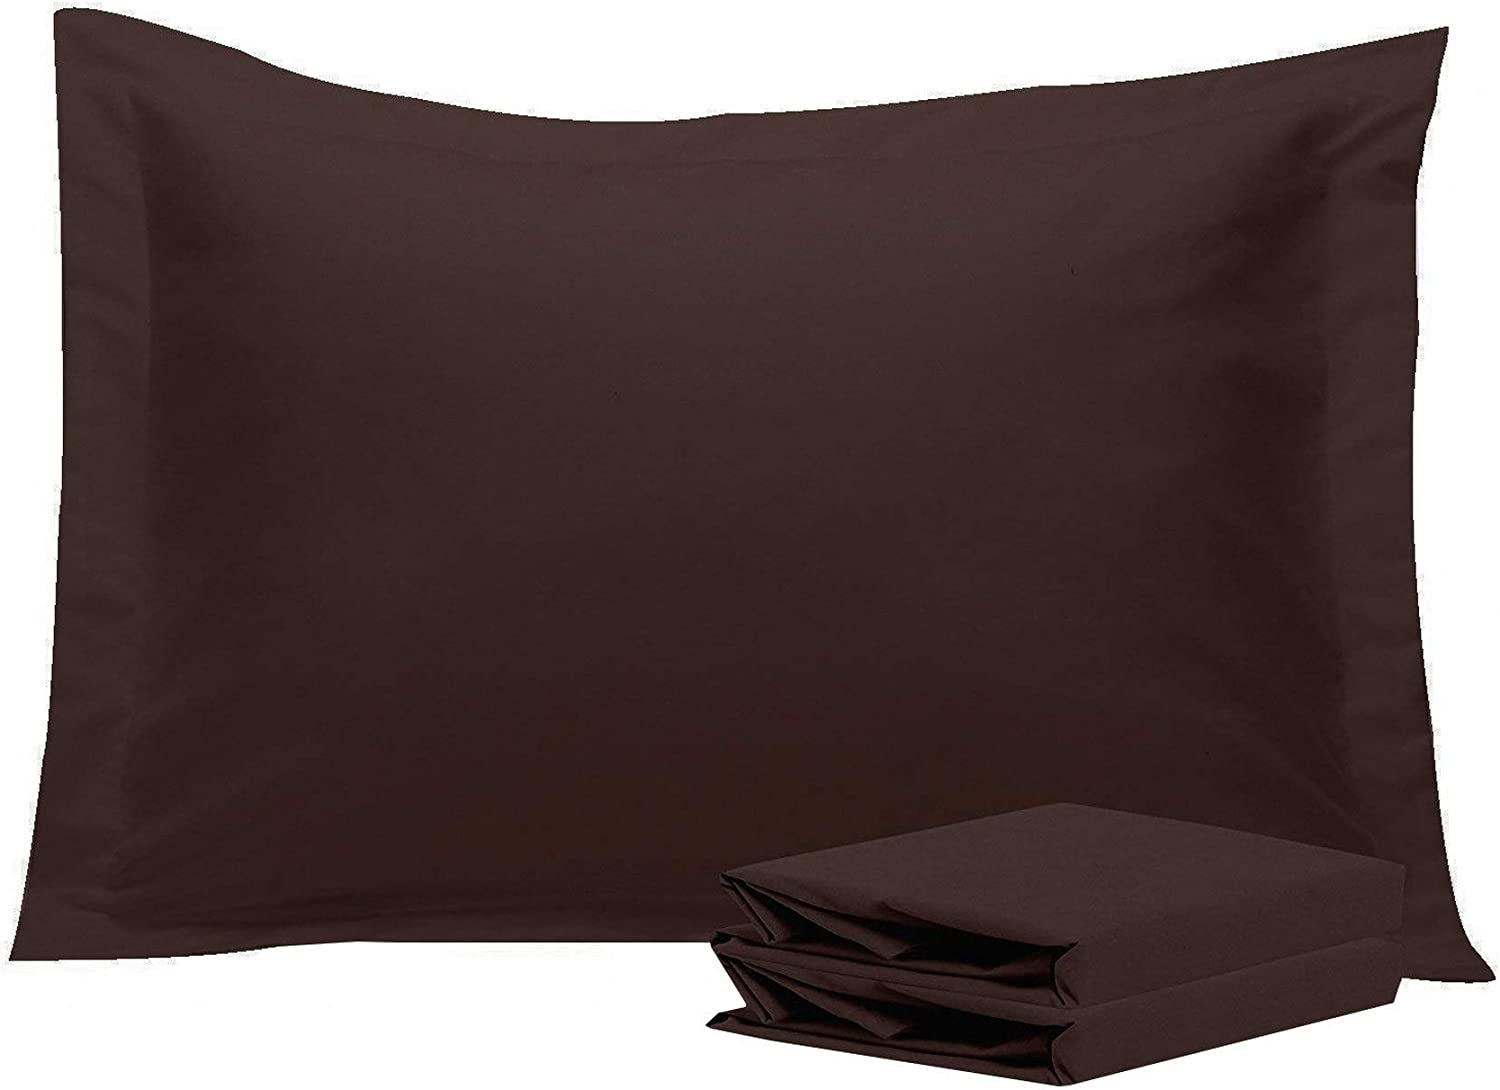 NTBAY Standard Pillow Shams, Set of 2, 100% Brushed Microfiber, Soft and Cozy, Wrinkle, Fade, Stain Resistant (Standard, Dark Brown)